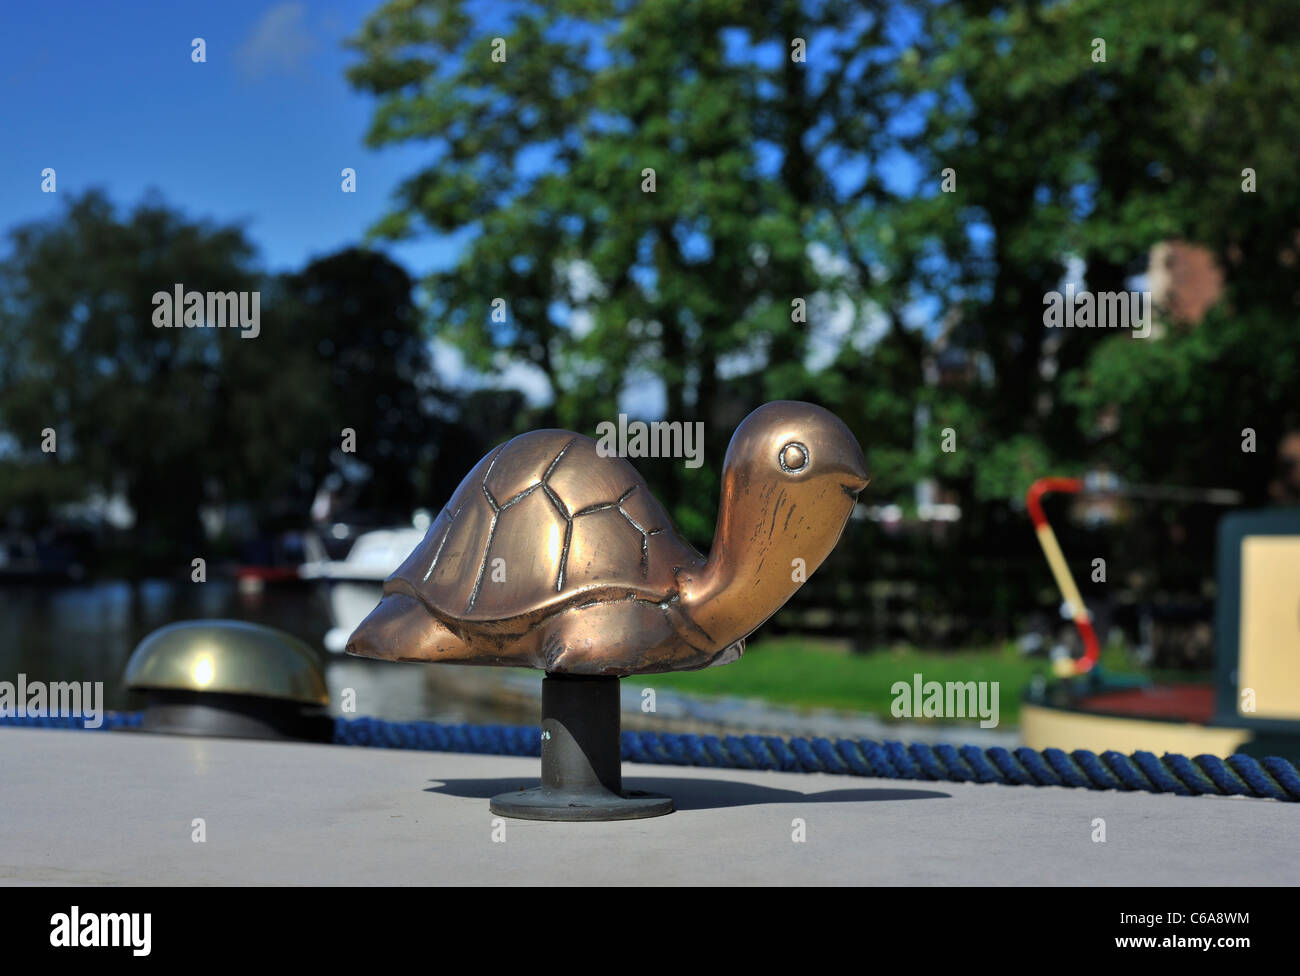 Small Brass Ornamental Turtle On Top Of Canal Longboat